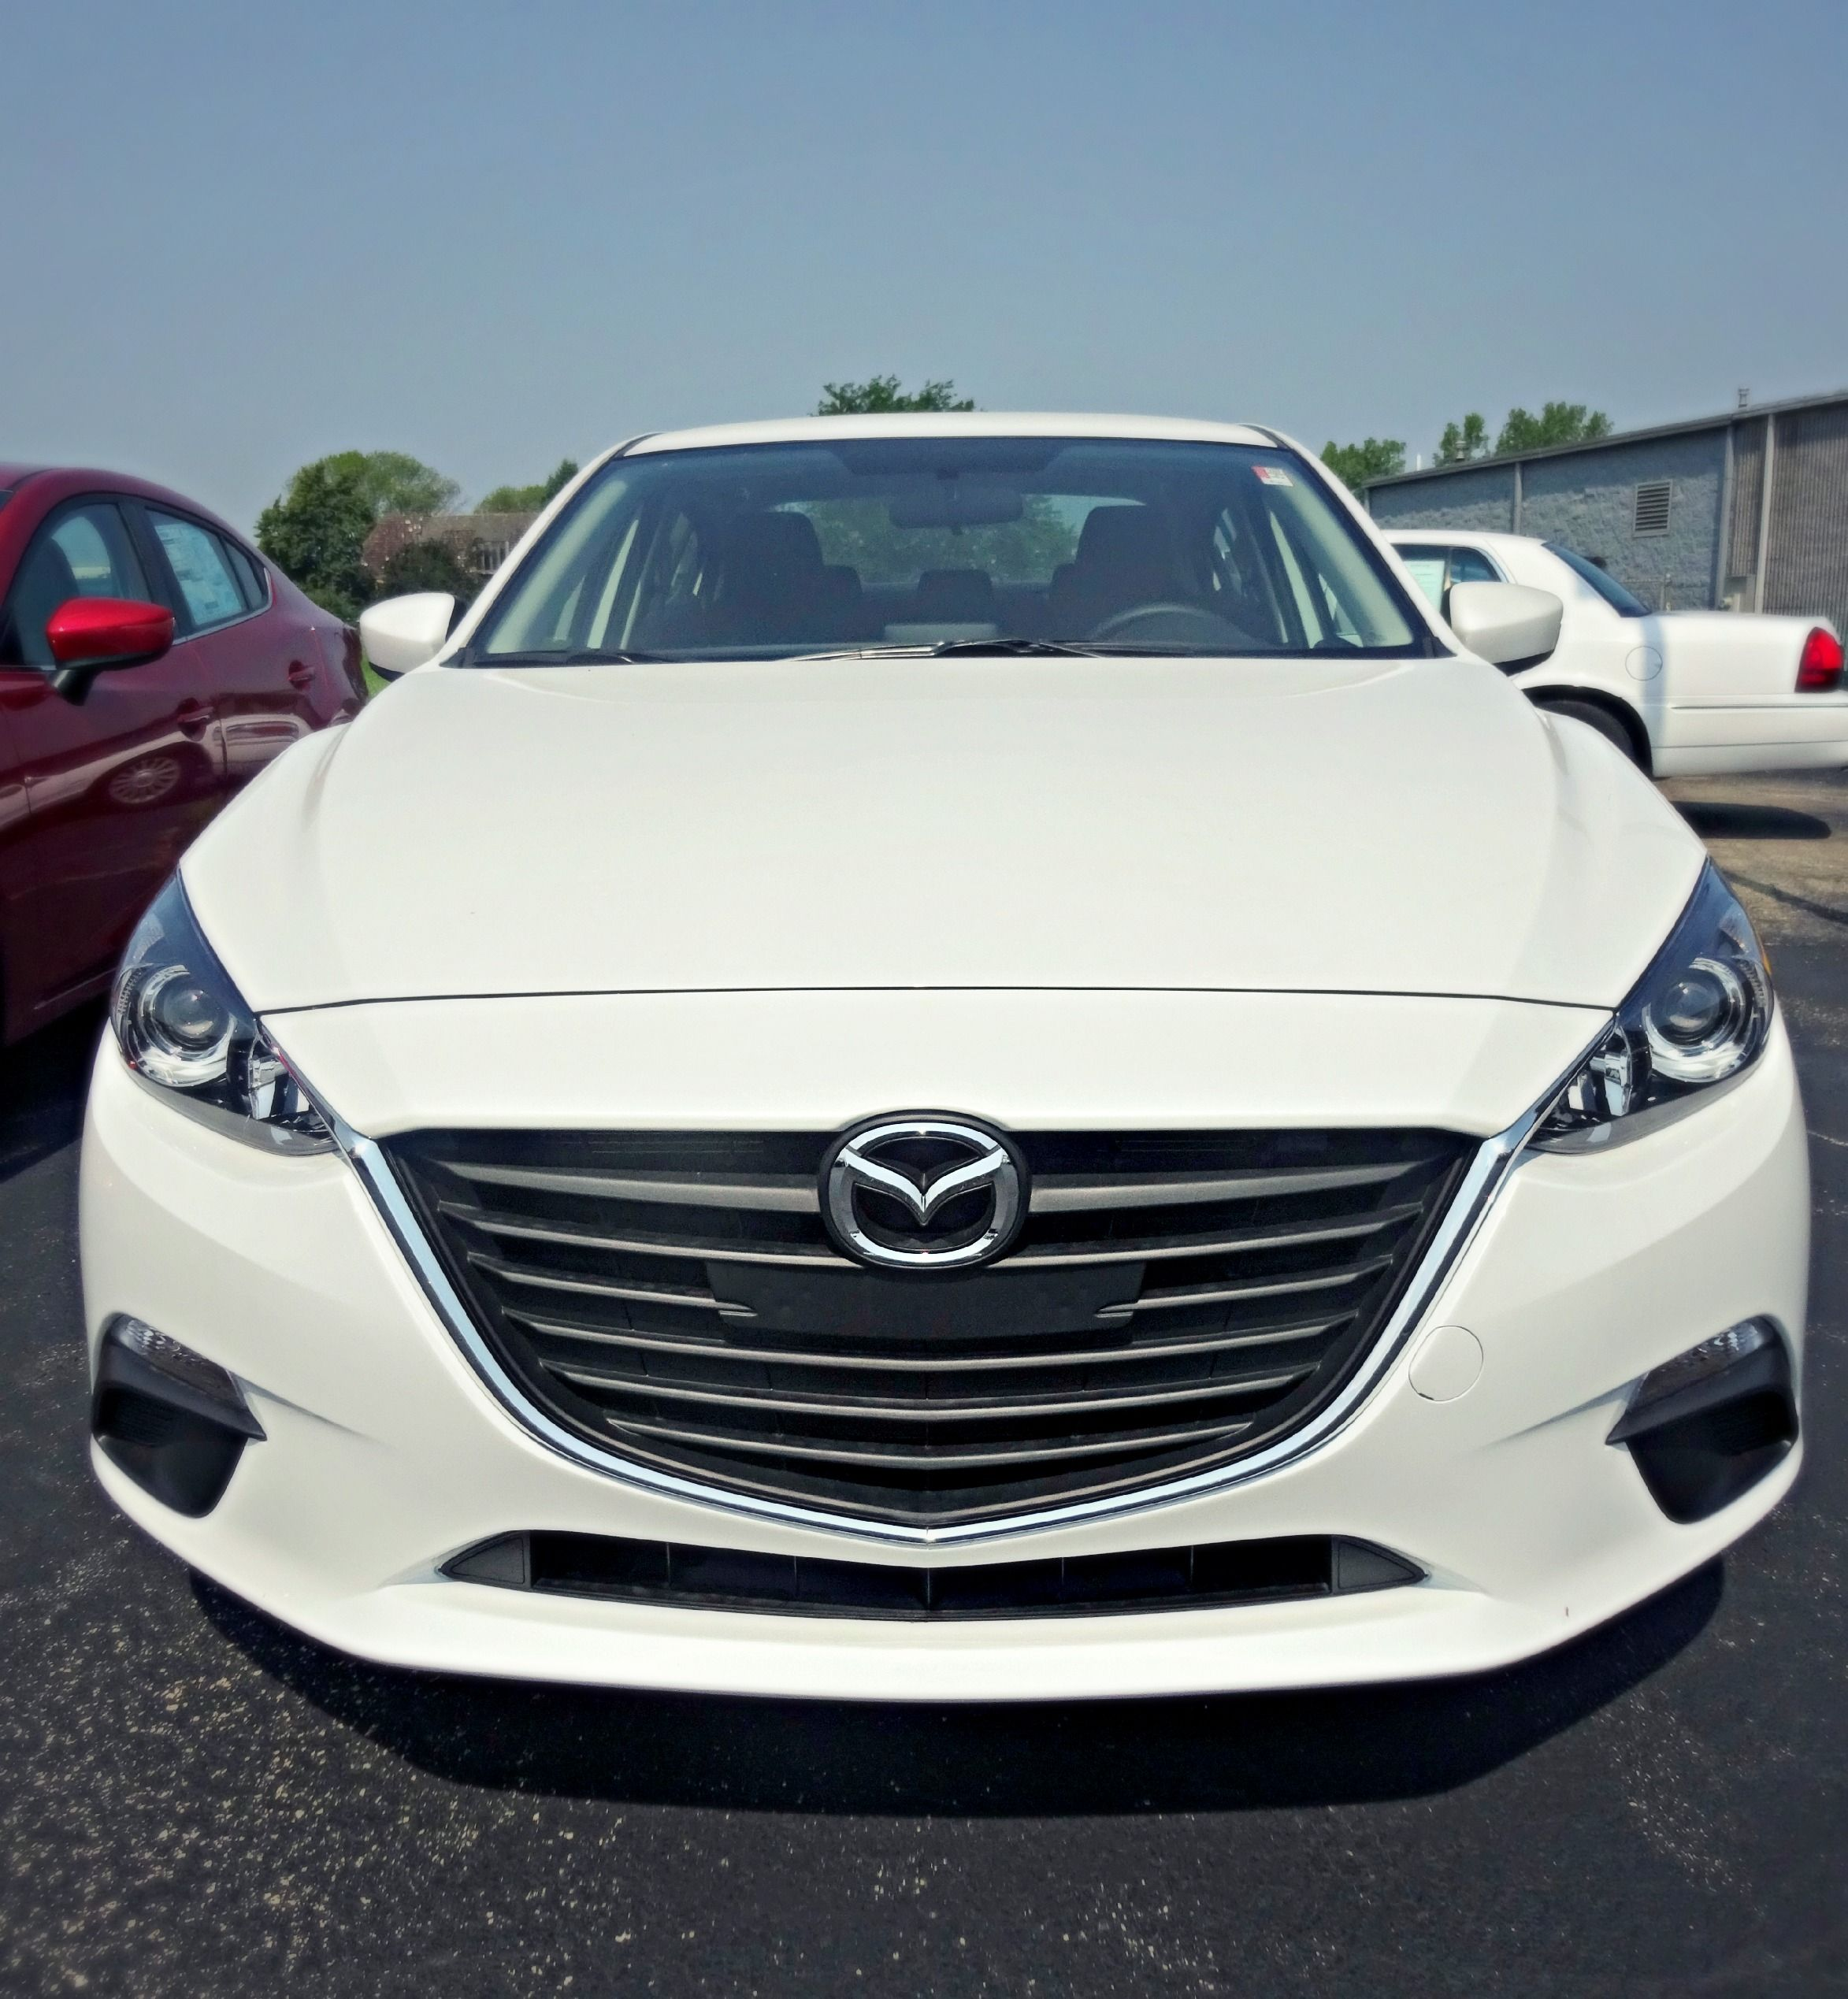 The 2014 Mazda Mazda3 i Touring at Napleton Autowerks Bourbonnais.